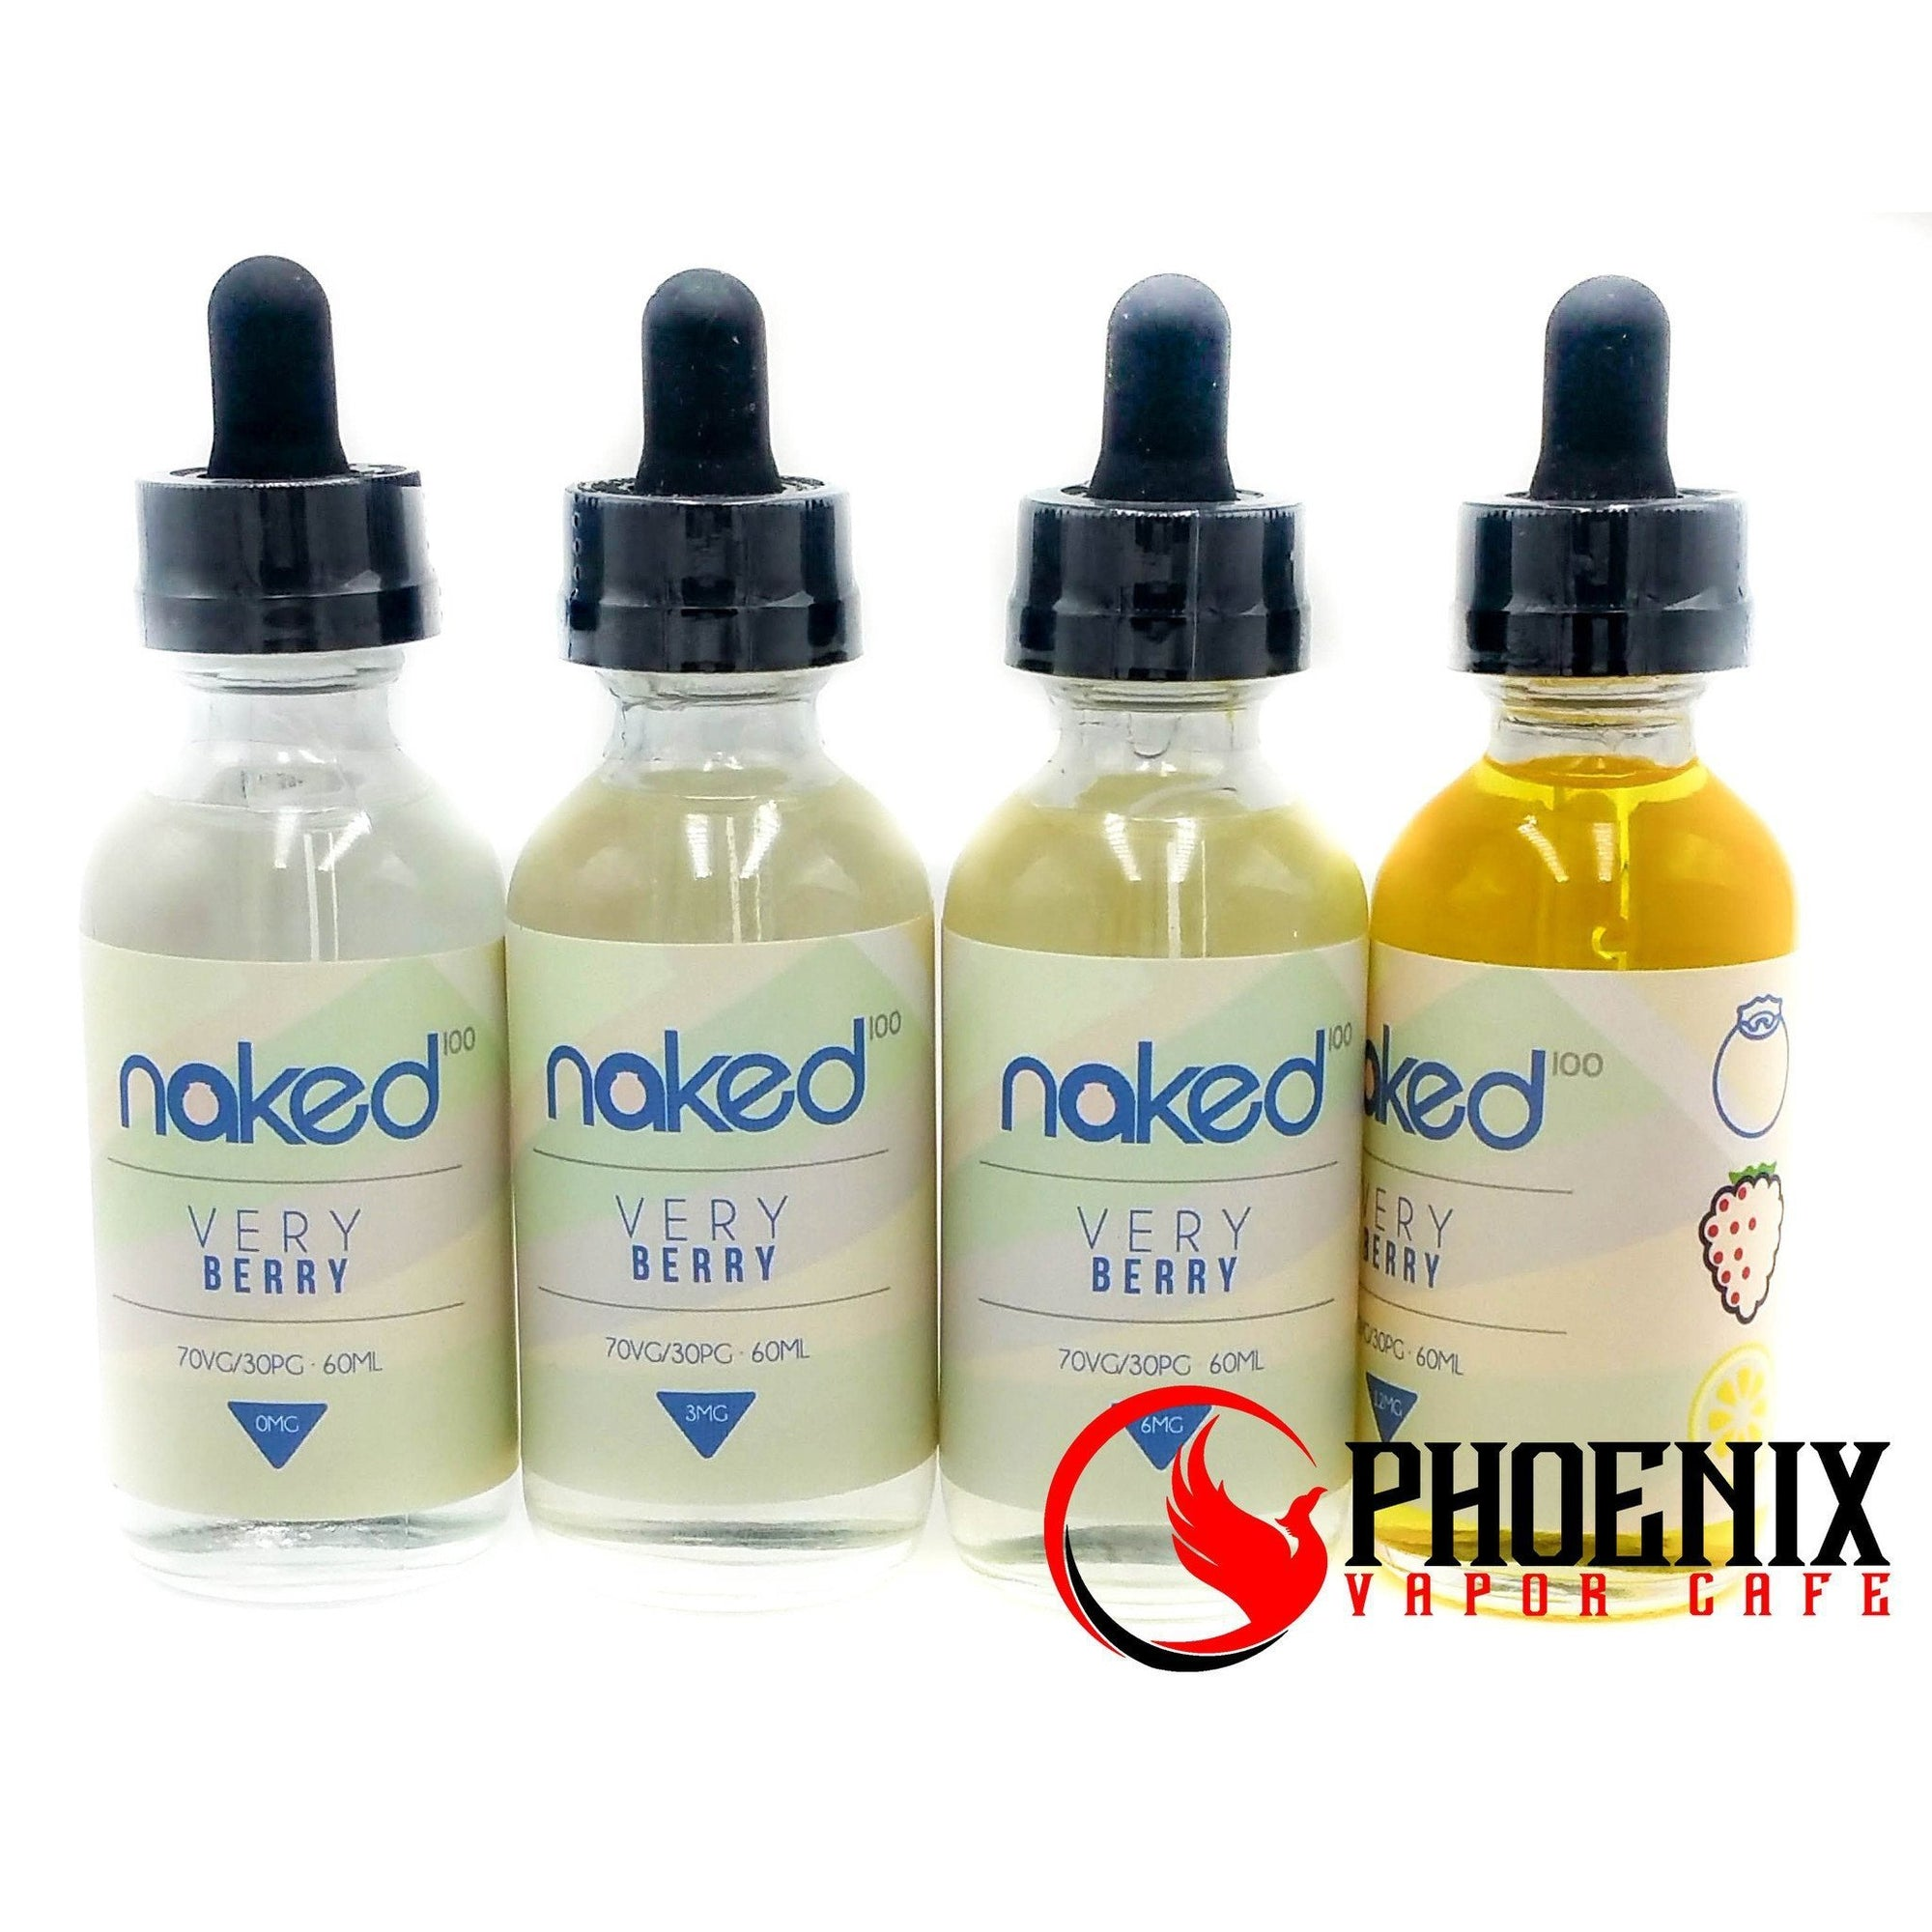 Naked E-Liquid 60 ml / 0 mg Naked Very Berry